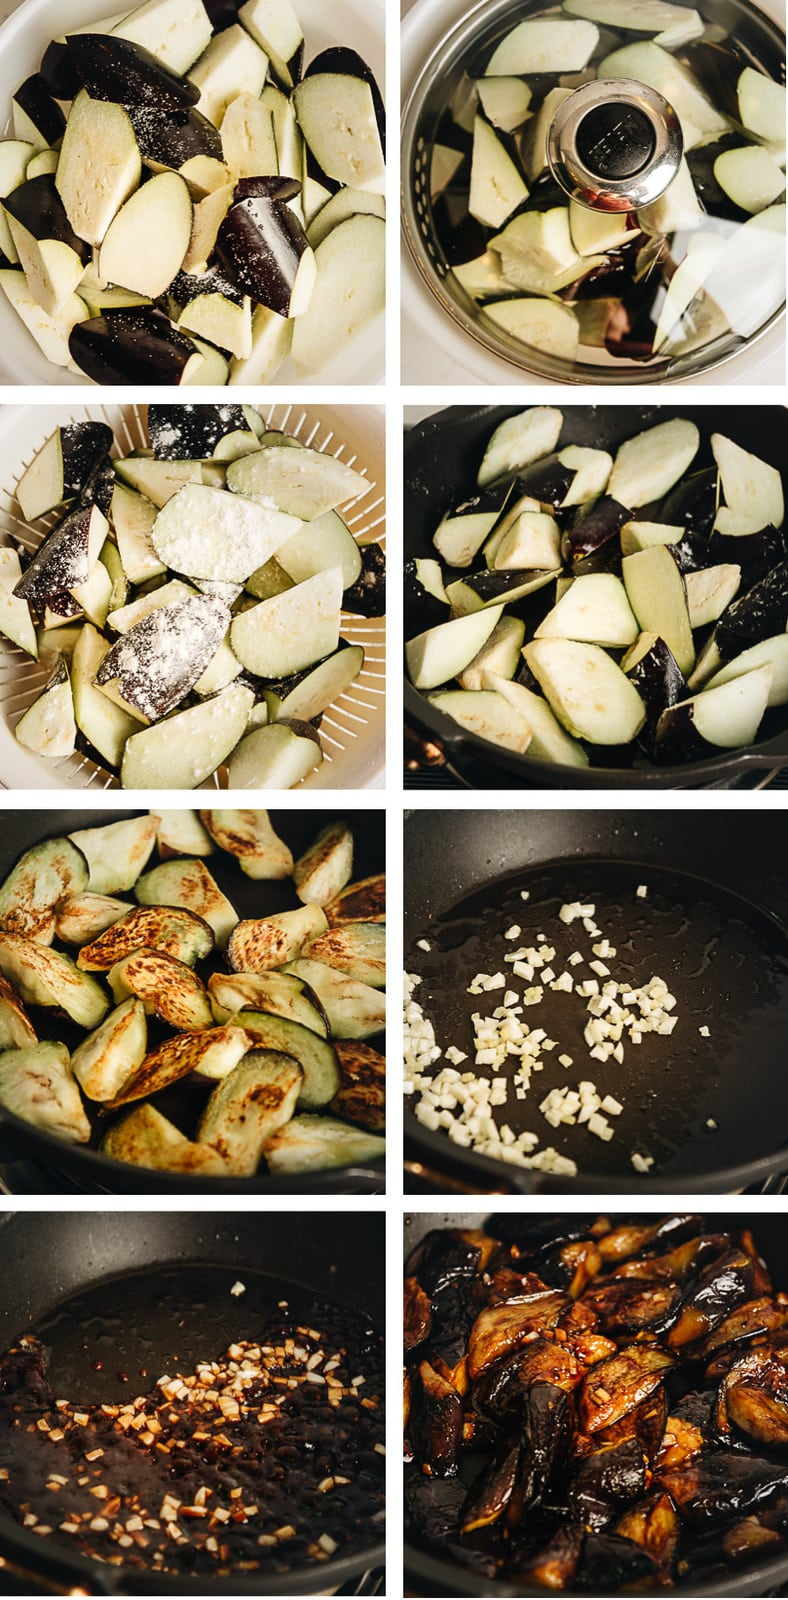 Home made Chinese eggplant cooking step by step